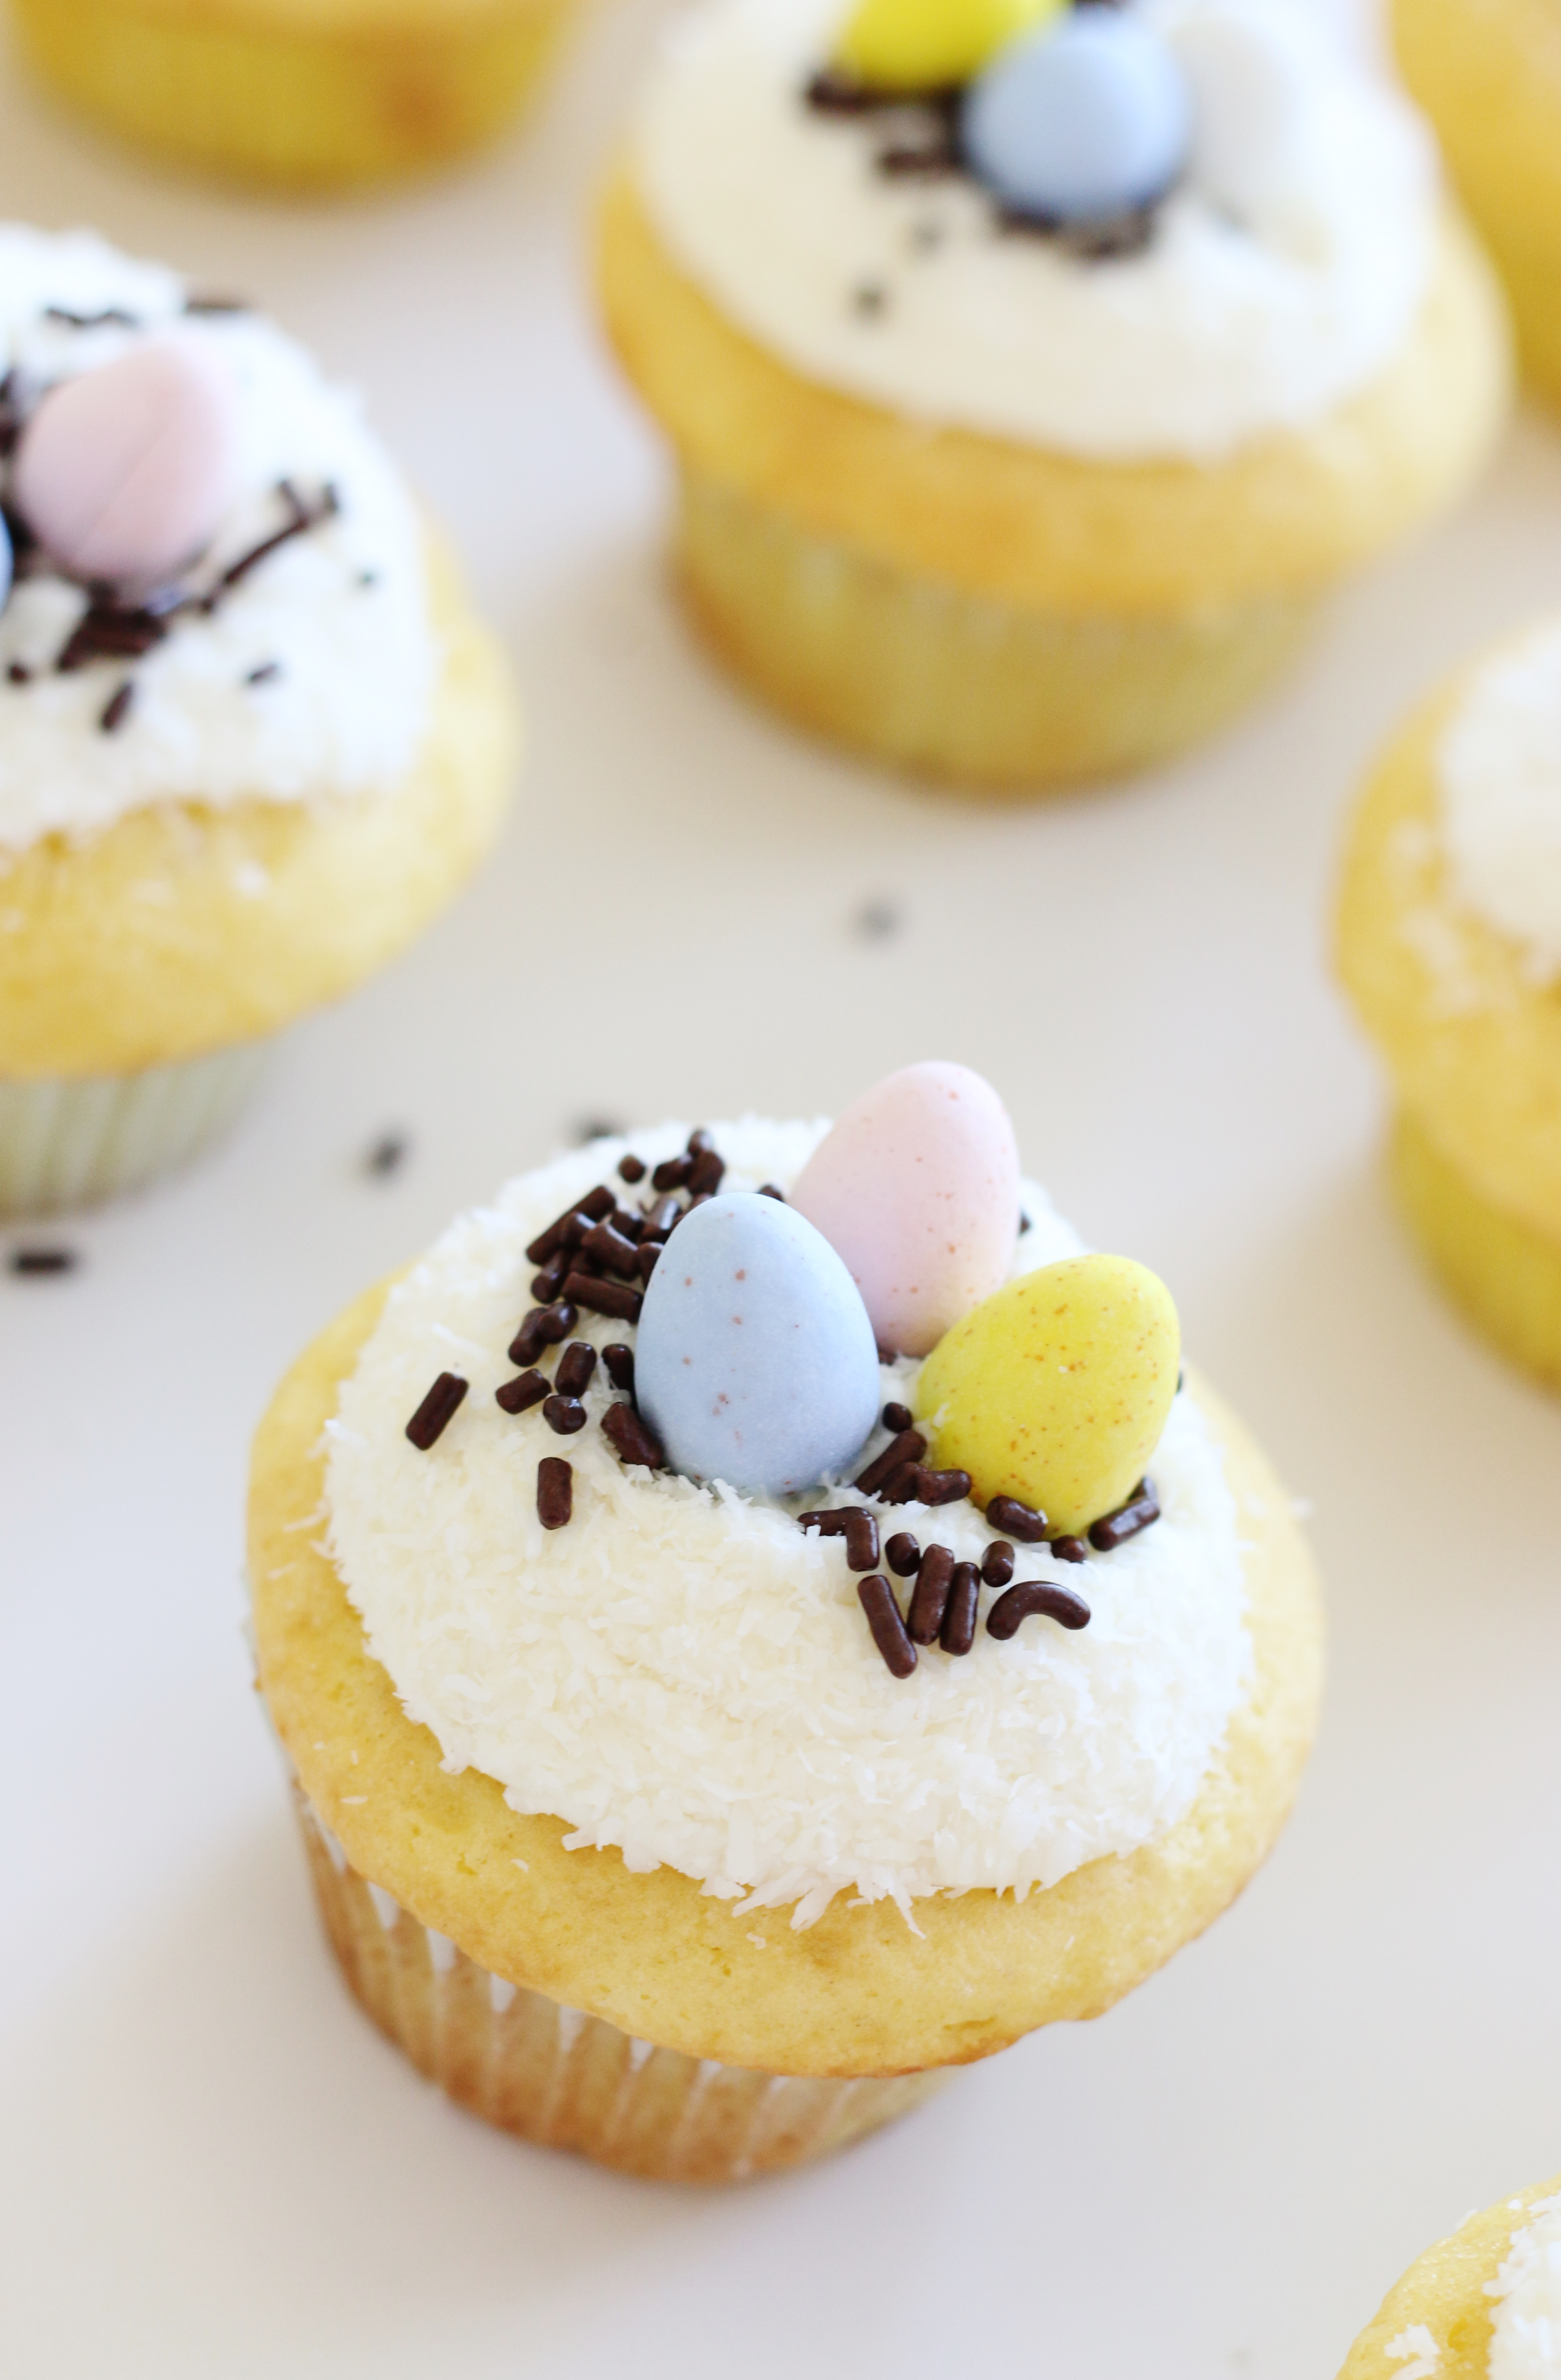 Make delicious Easter cupcakes using a secret ingredient - cake mix! Then add cute Cadbury eggs on top for a fun bird's nest effect that is so festive!